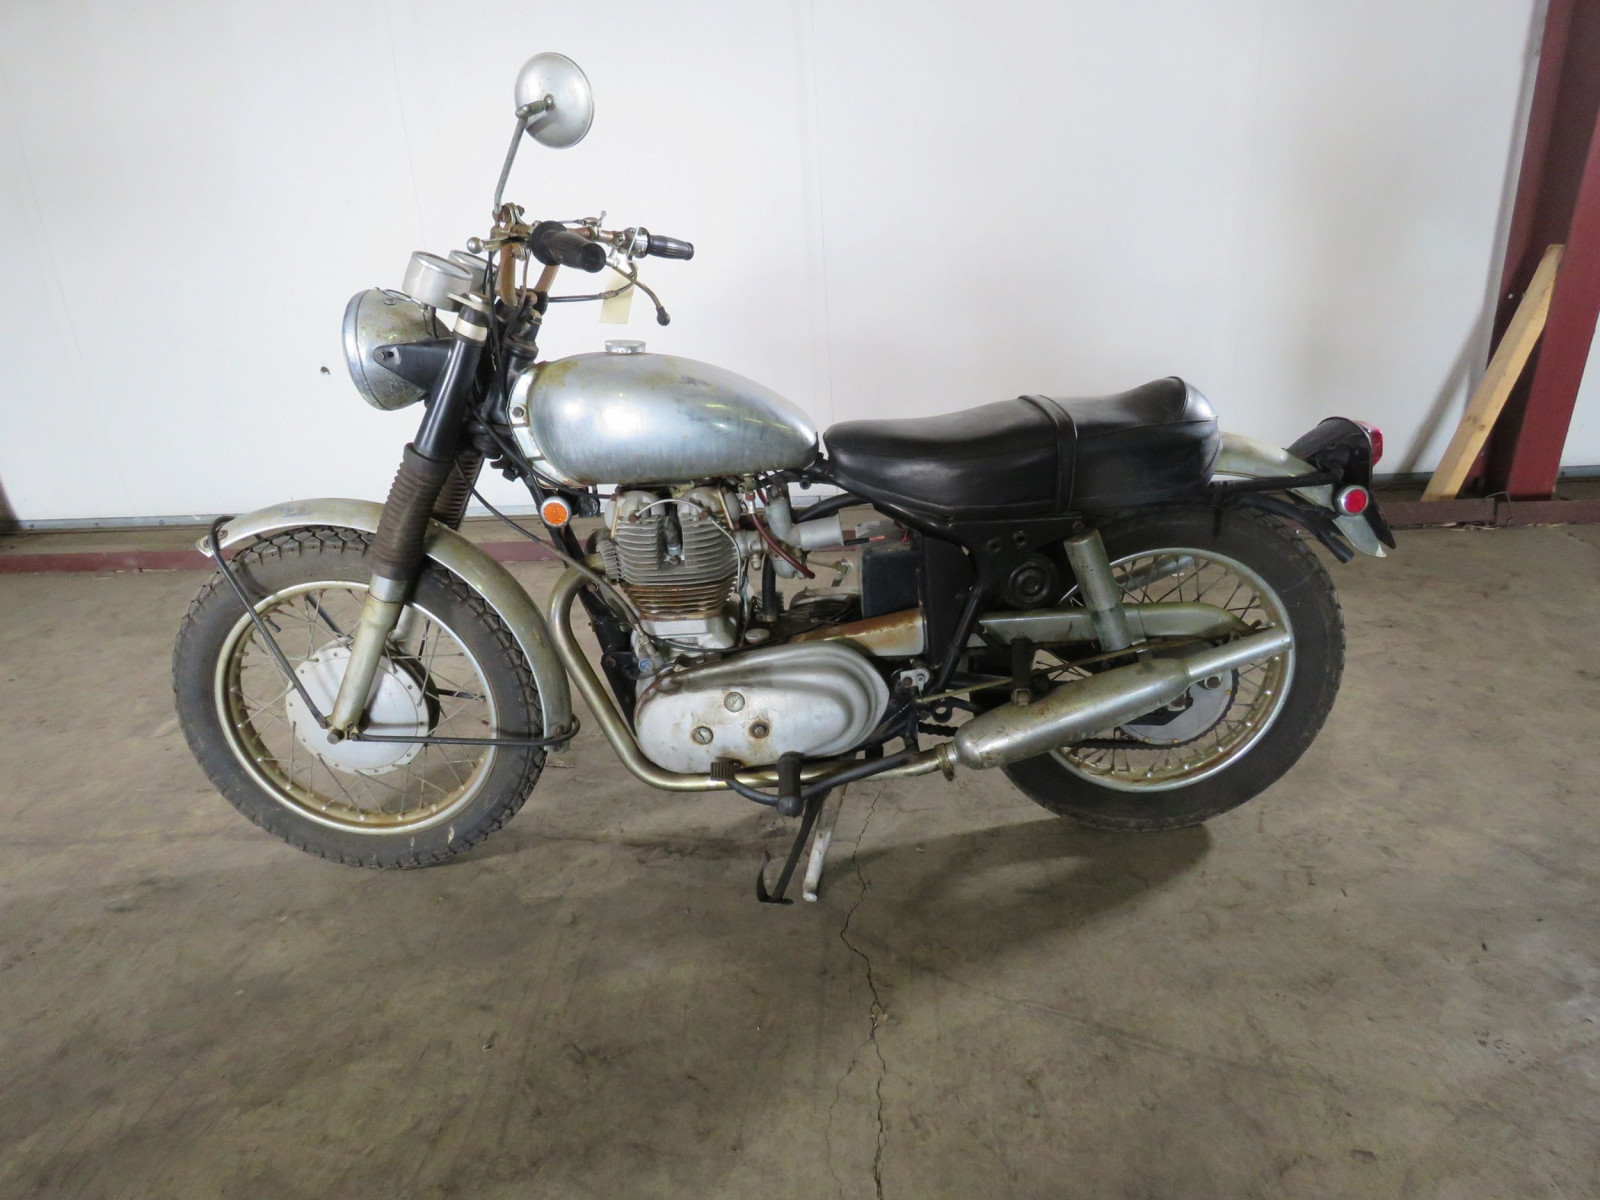 1969 Royal Enfield Series 2 Interceptor Motorcycle - Image 1